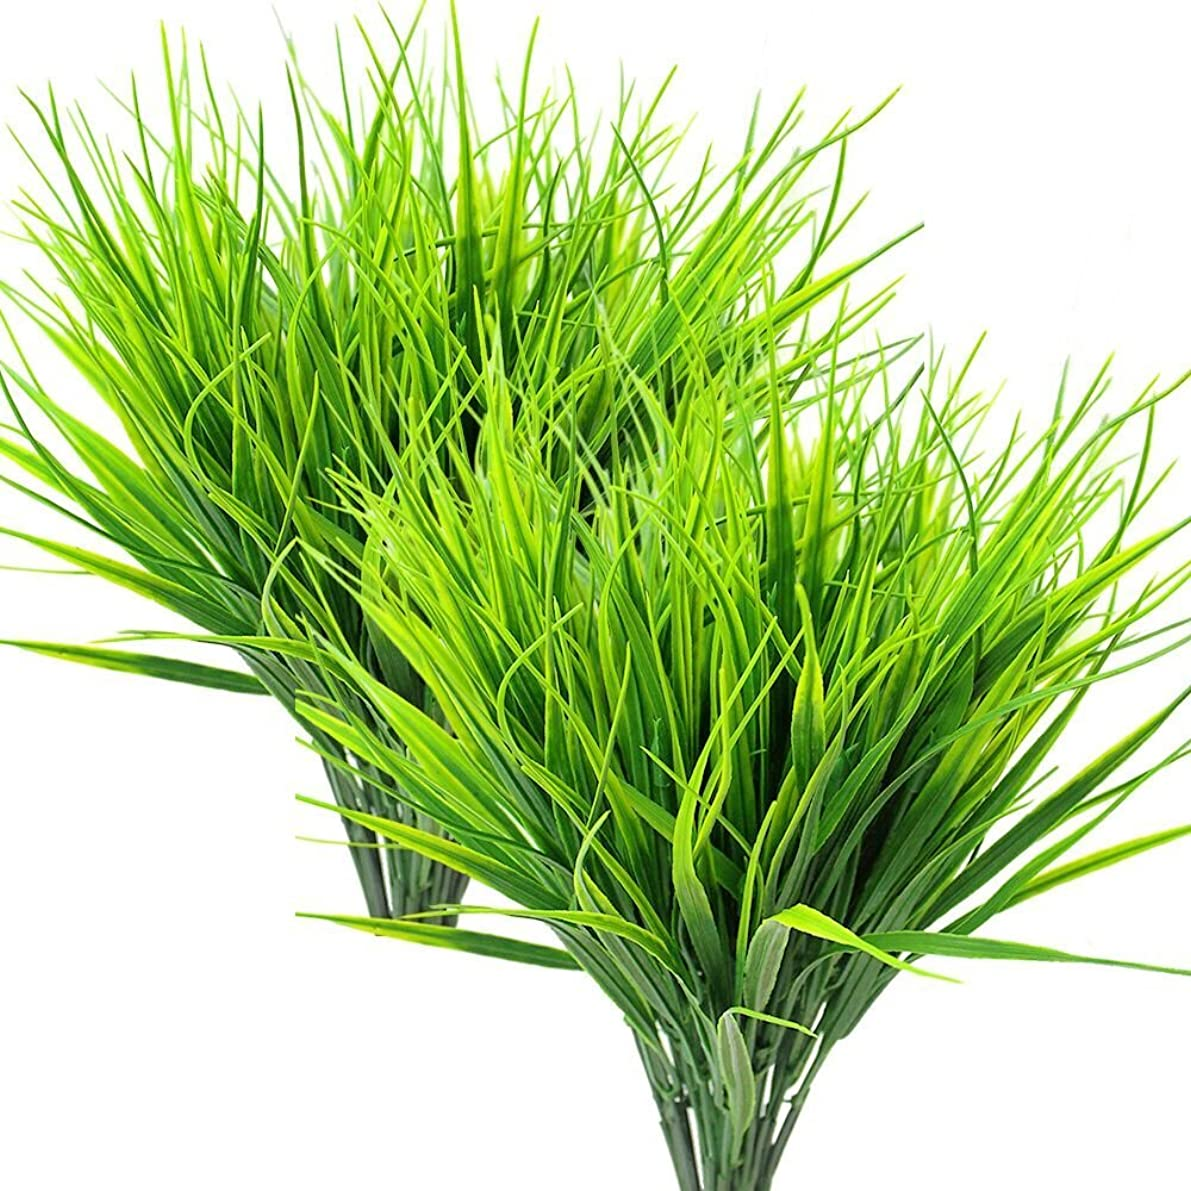 ZMOCEN 8 Pcs Artificial Outdoor Plants, Fake Plastic Greenery Shrubs Wheat Grass Outdoor Window Box Verandah Hanging Planter Indoor Outside Home Garde